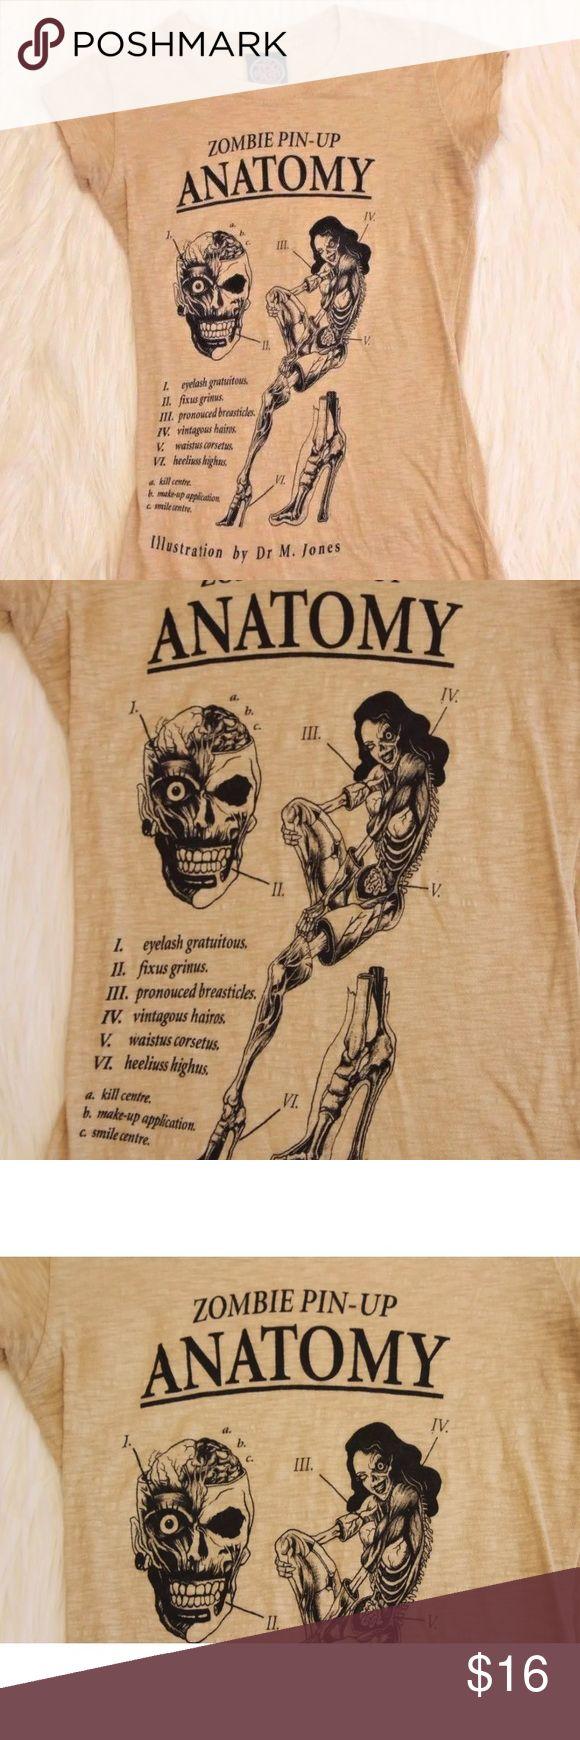 "Zombie Anatomy Pin Up T Shirt Too Fast  Cirque Couture T-Shirt  Zombie Pin Up Anatomy  Medium  Chest 15.5""  Length 24.5"" 100% Cotton  Gently Worn From a smoke free and pet friendly home too fast Tops Tees - Short Sleeve"